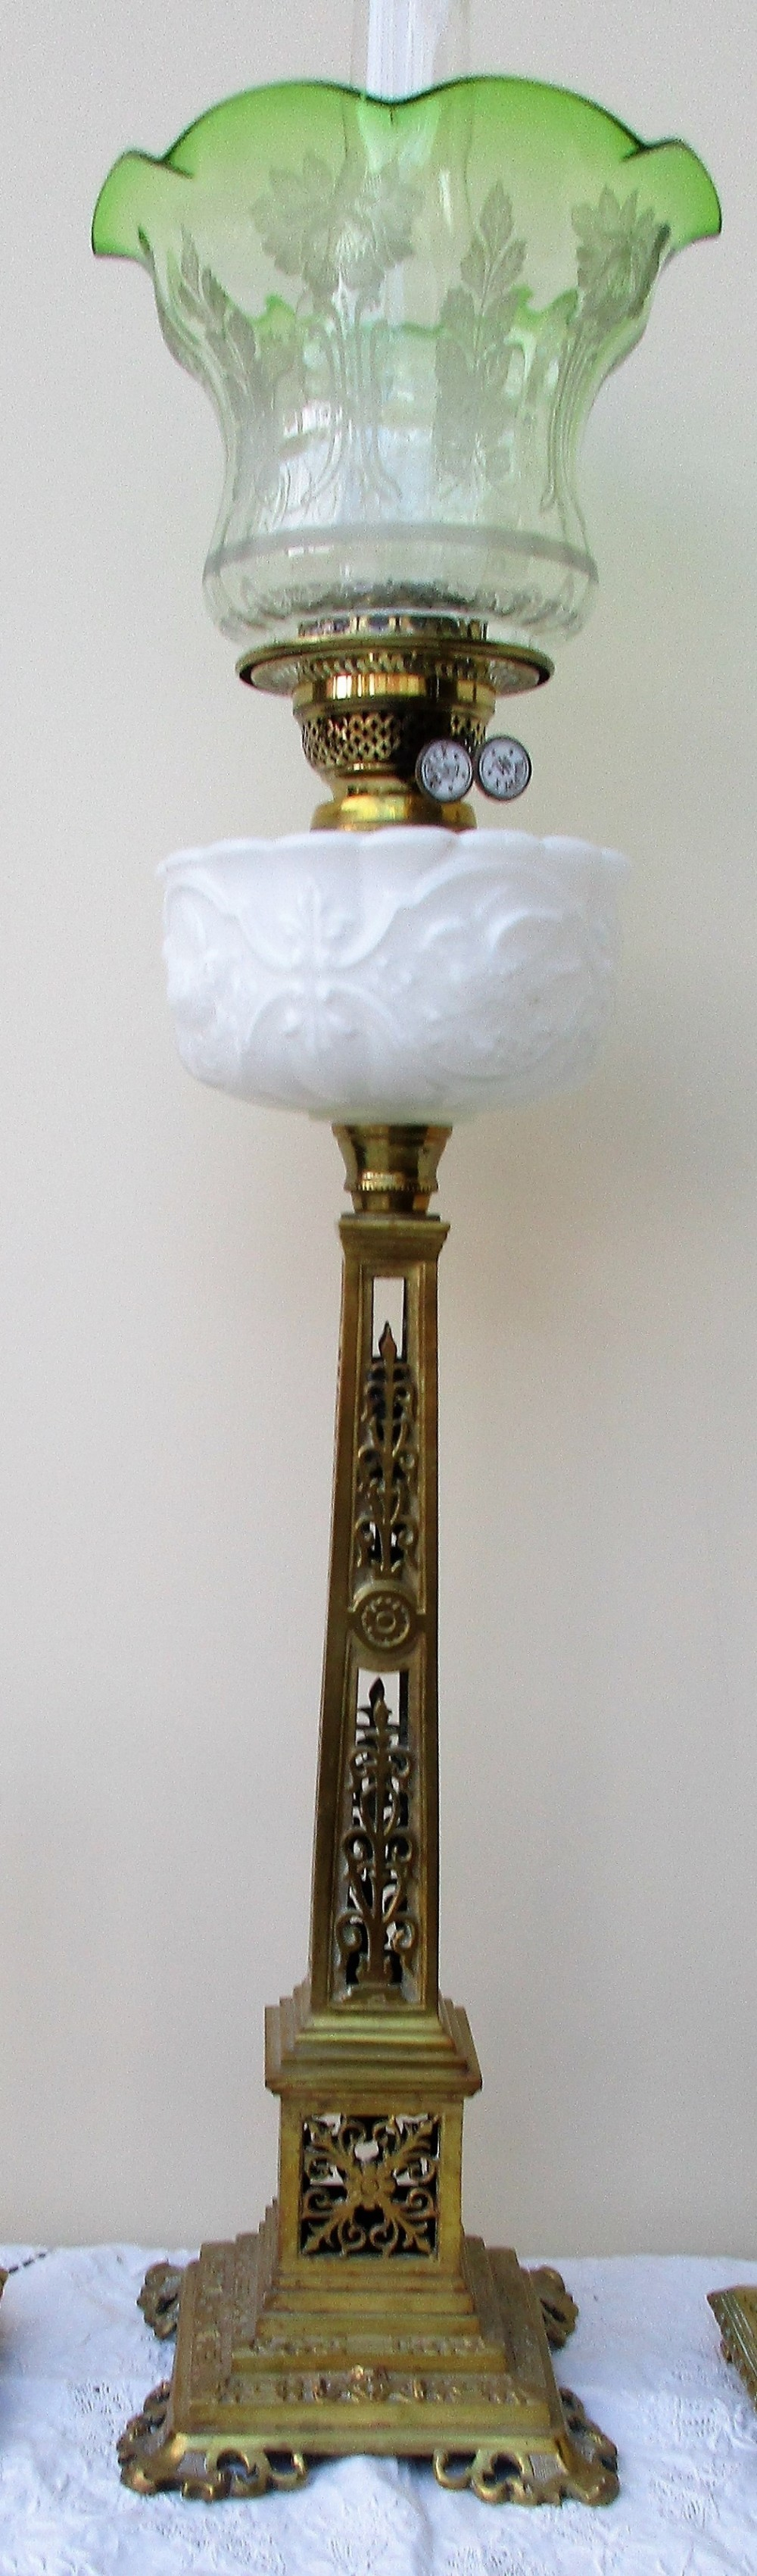 antique anglo french belle poque cast brass column oil lamp